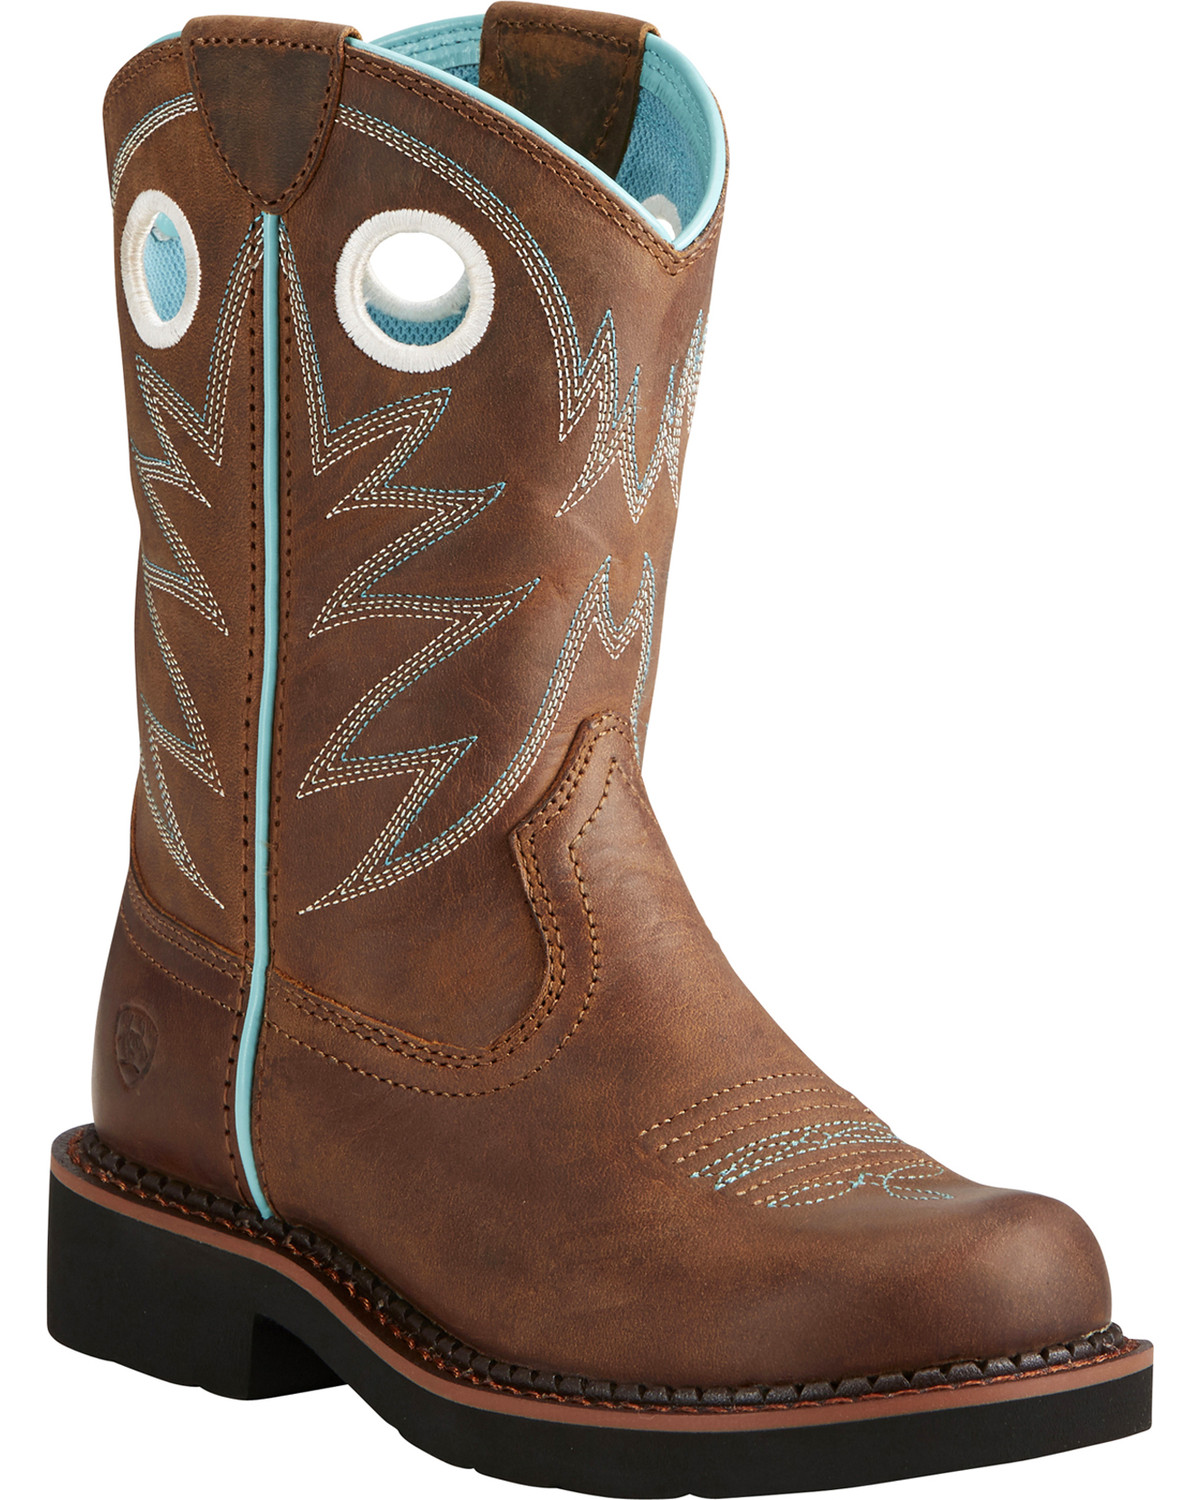 Ariat Boots Fat Baby